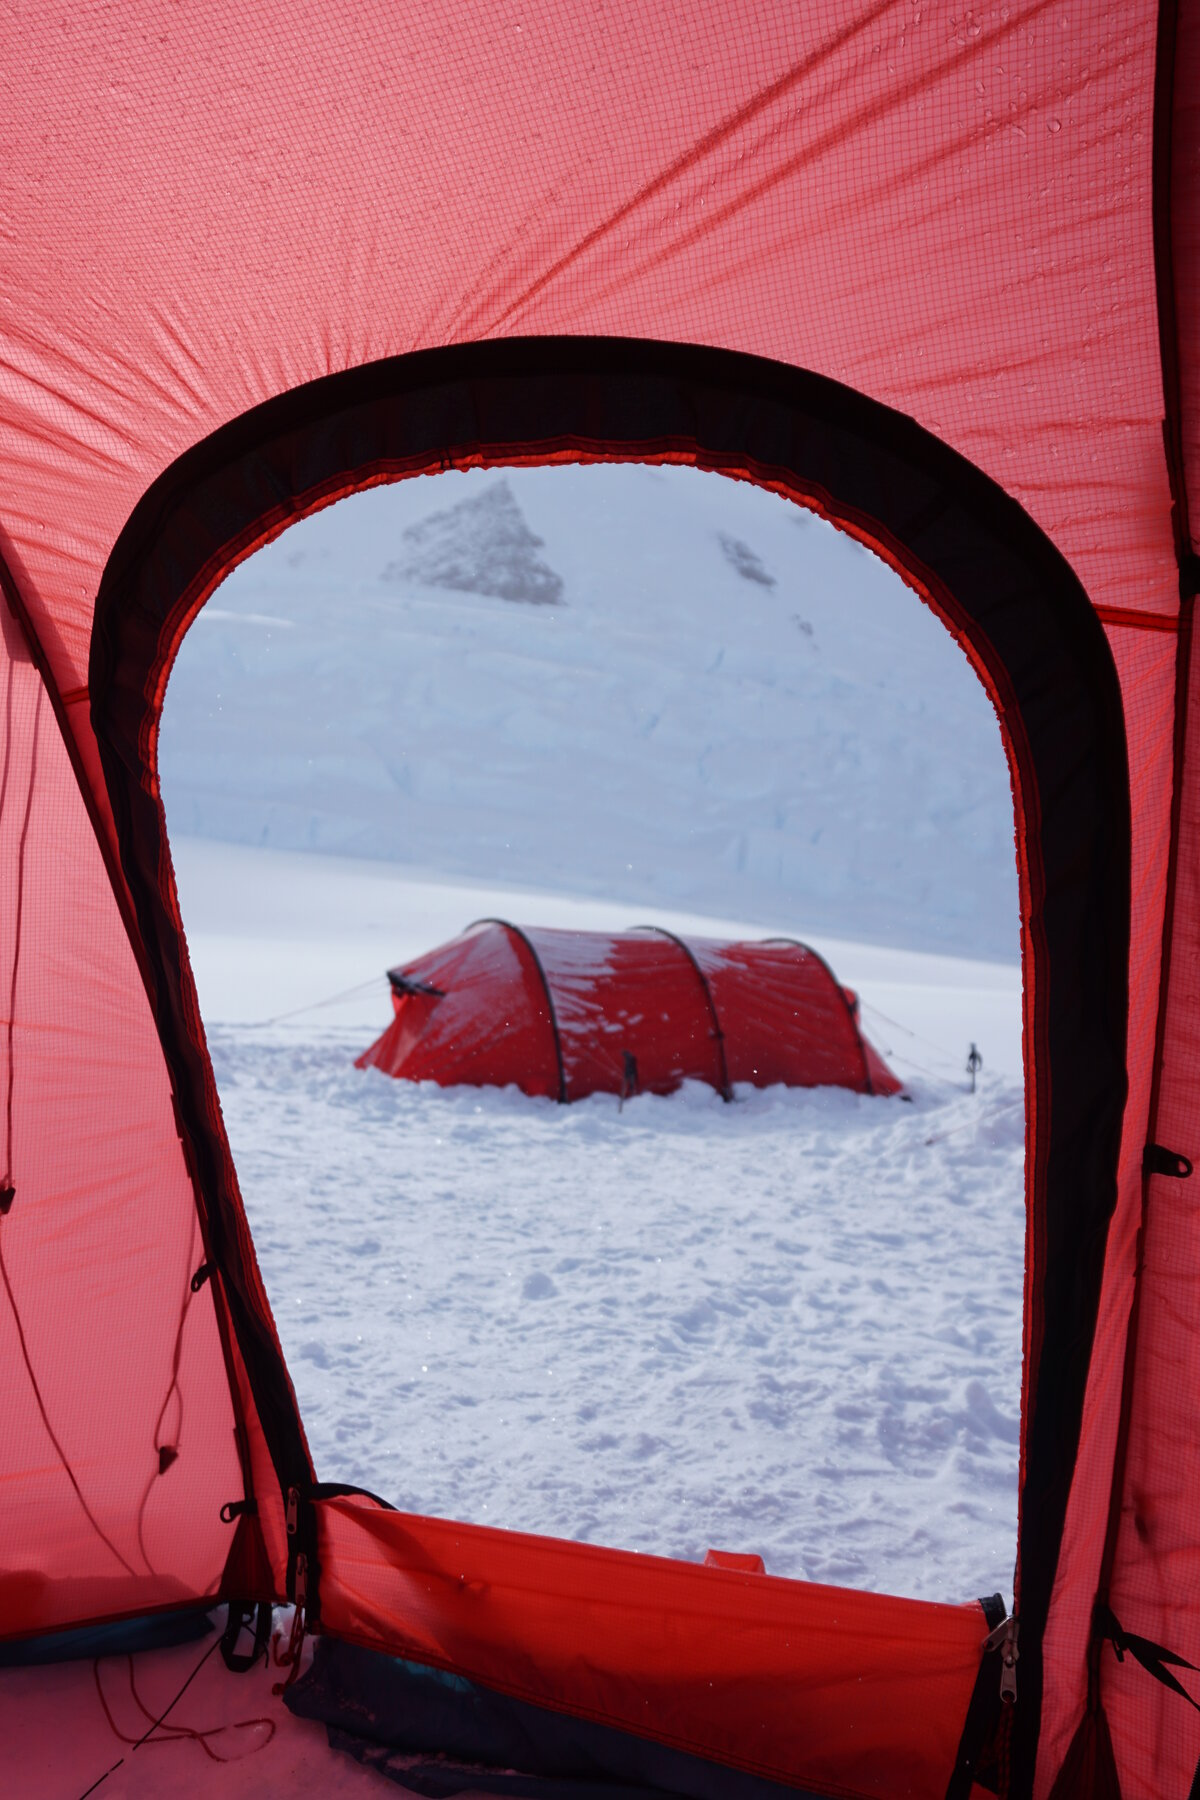 View of a frost covered red Hilleberg tent